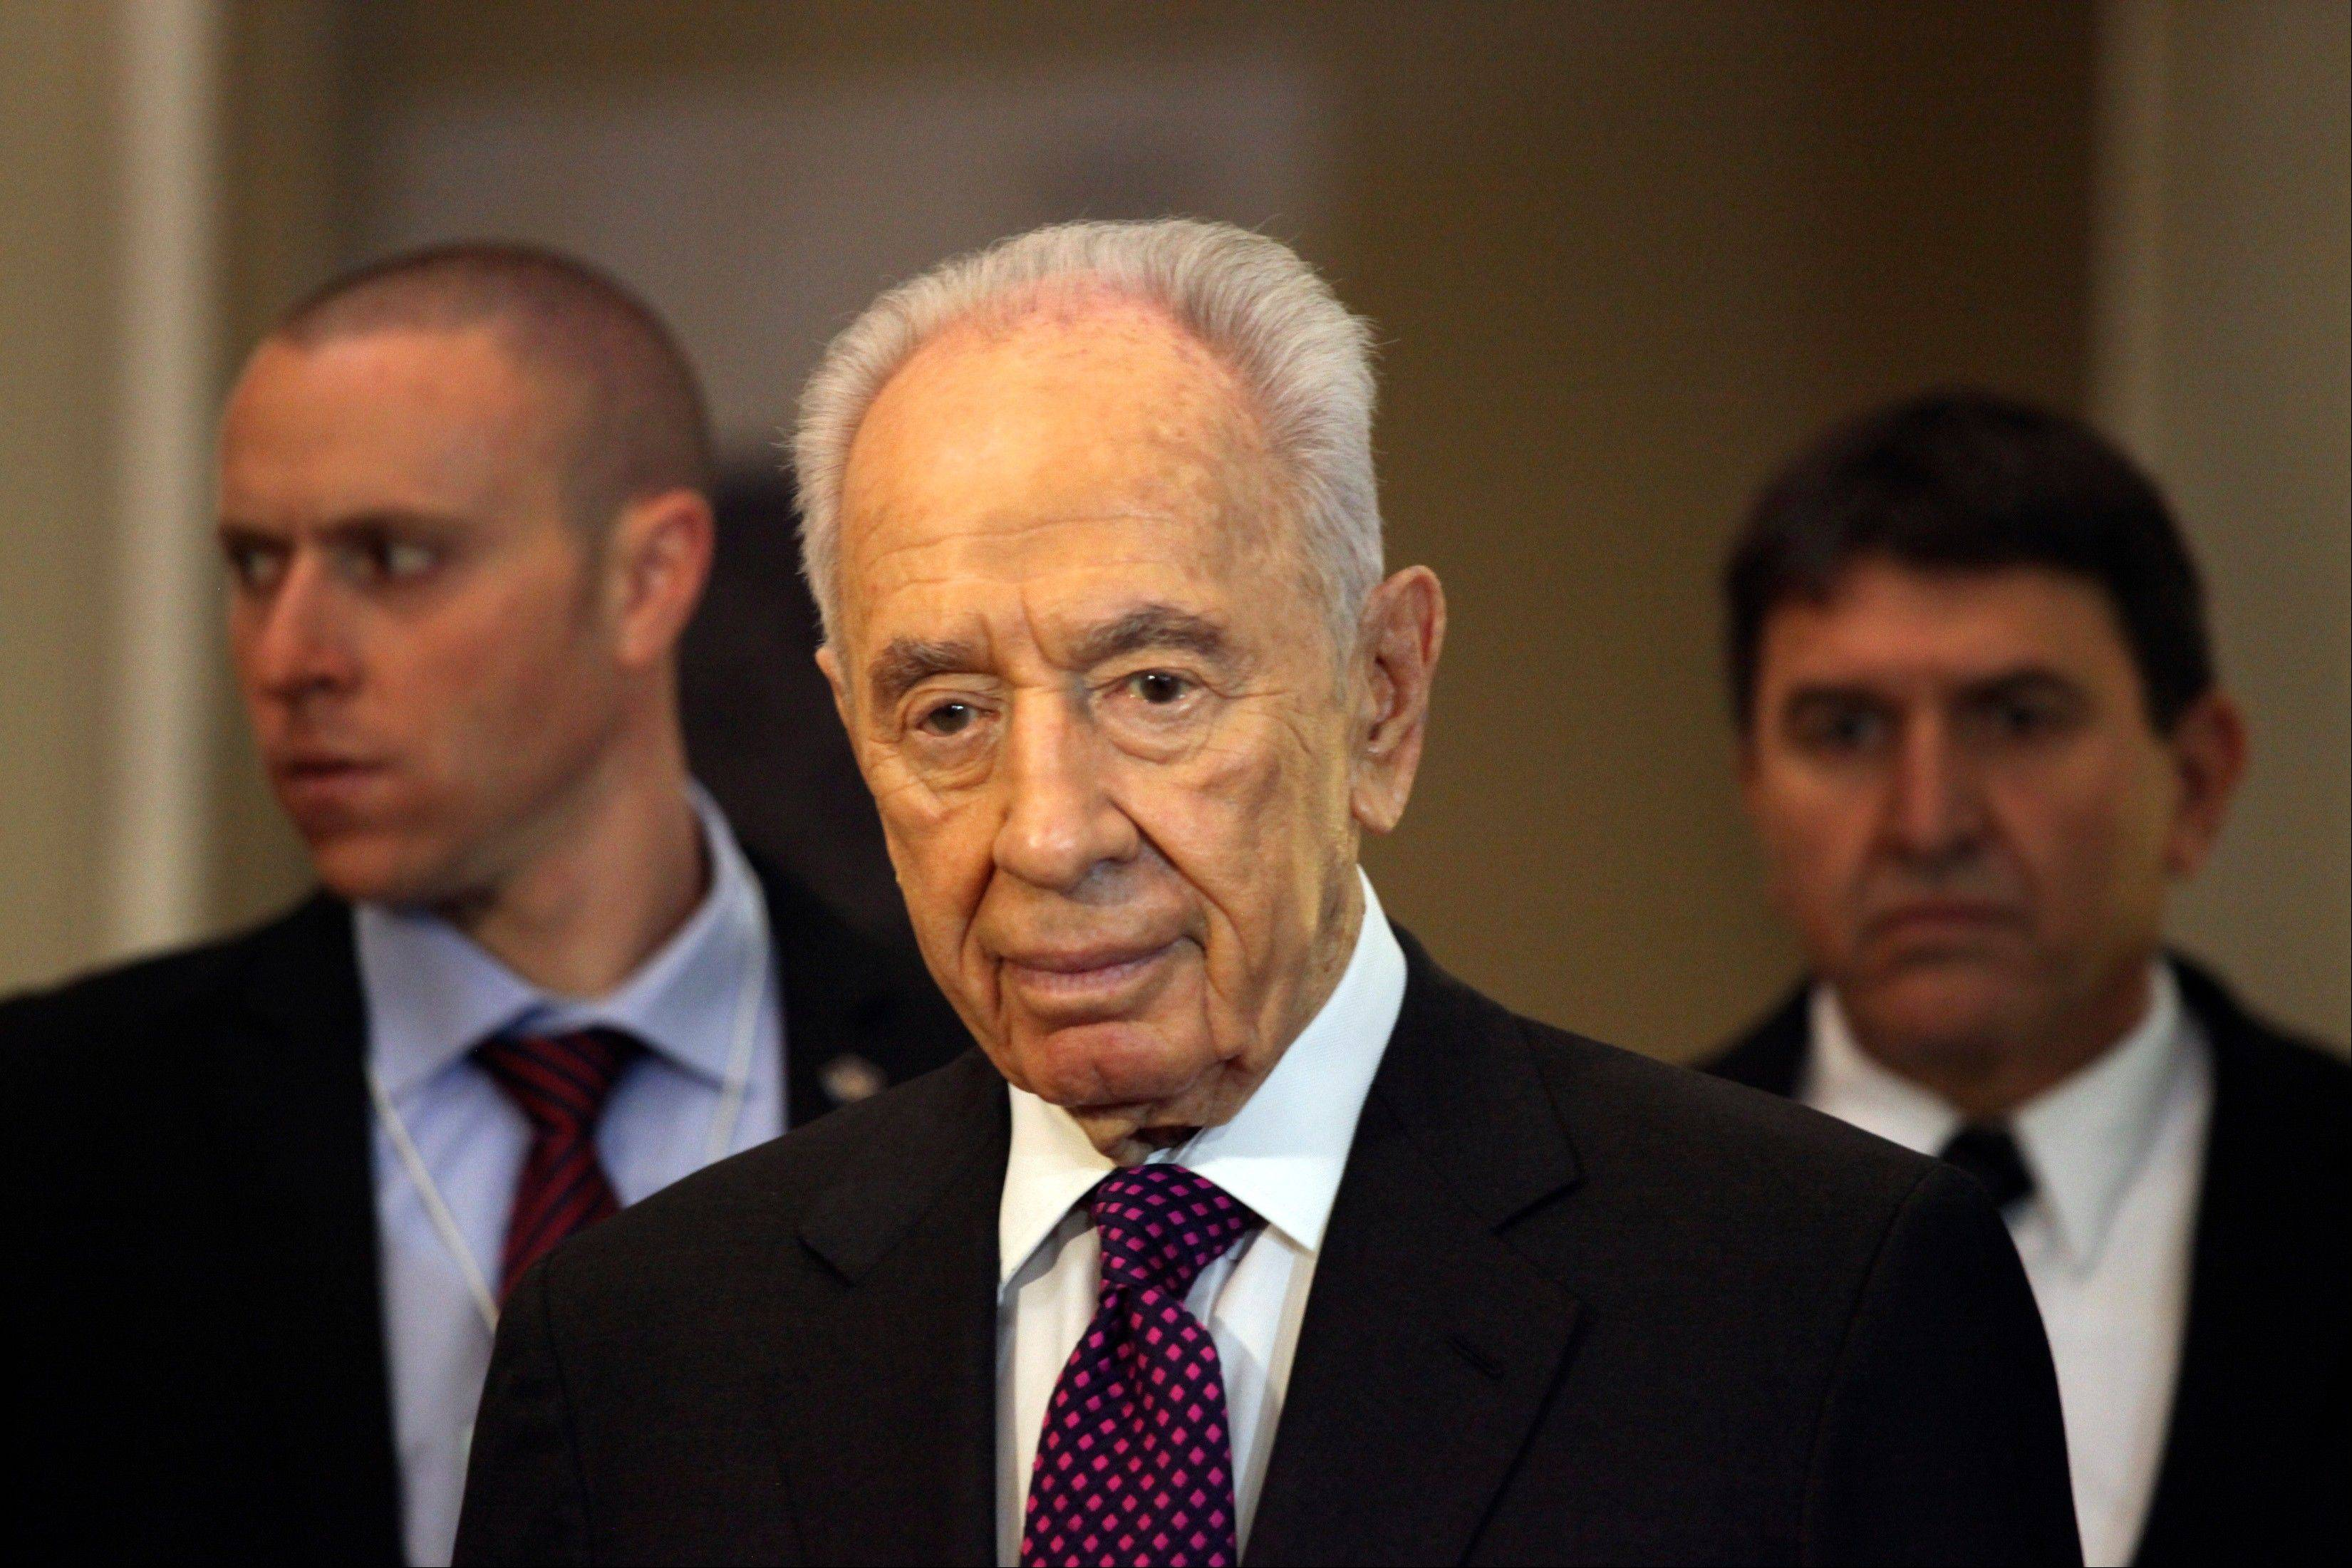 Associated PressIsraeli President, Shimon Peres, arrives to give a brief statement at the World Economic Forum, in Southern Shuneh, 34 miles southeast of Amman, Jordan, Sunday, May 26, 2013. Peres says it is possible for Israelis and Palestinians to overcome differences and skepticism over peacemaking and that it is time to restart serious negotiations and conclude a peace treaty that has long dogged the two warring sides.